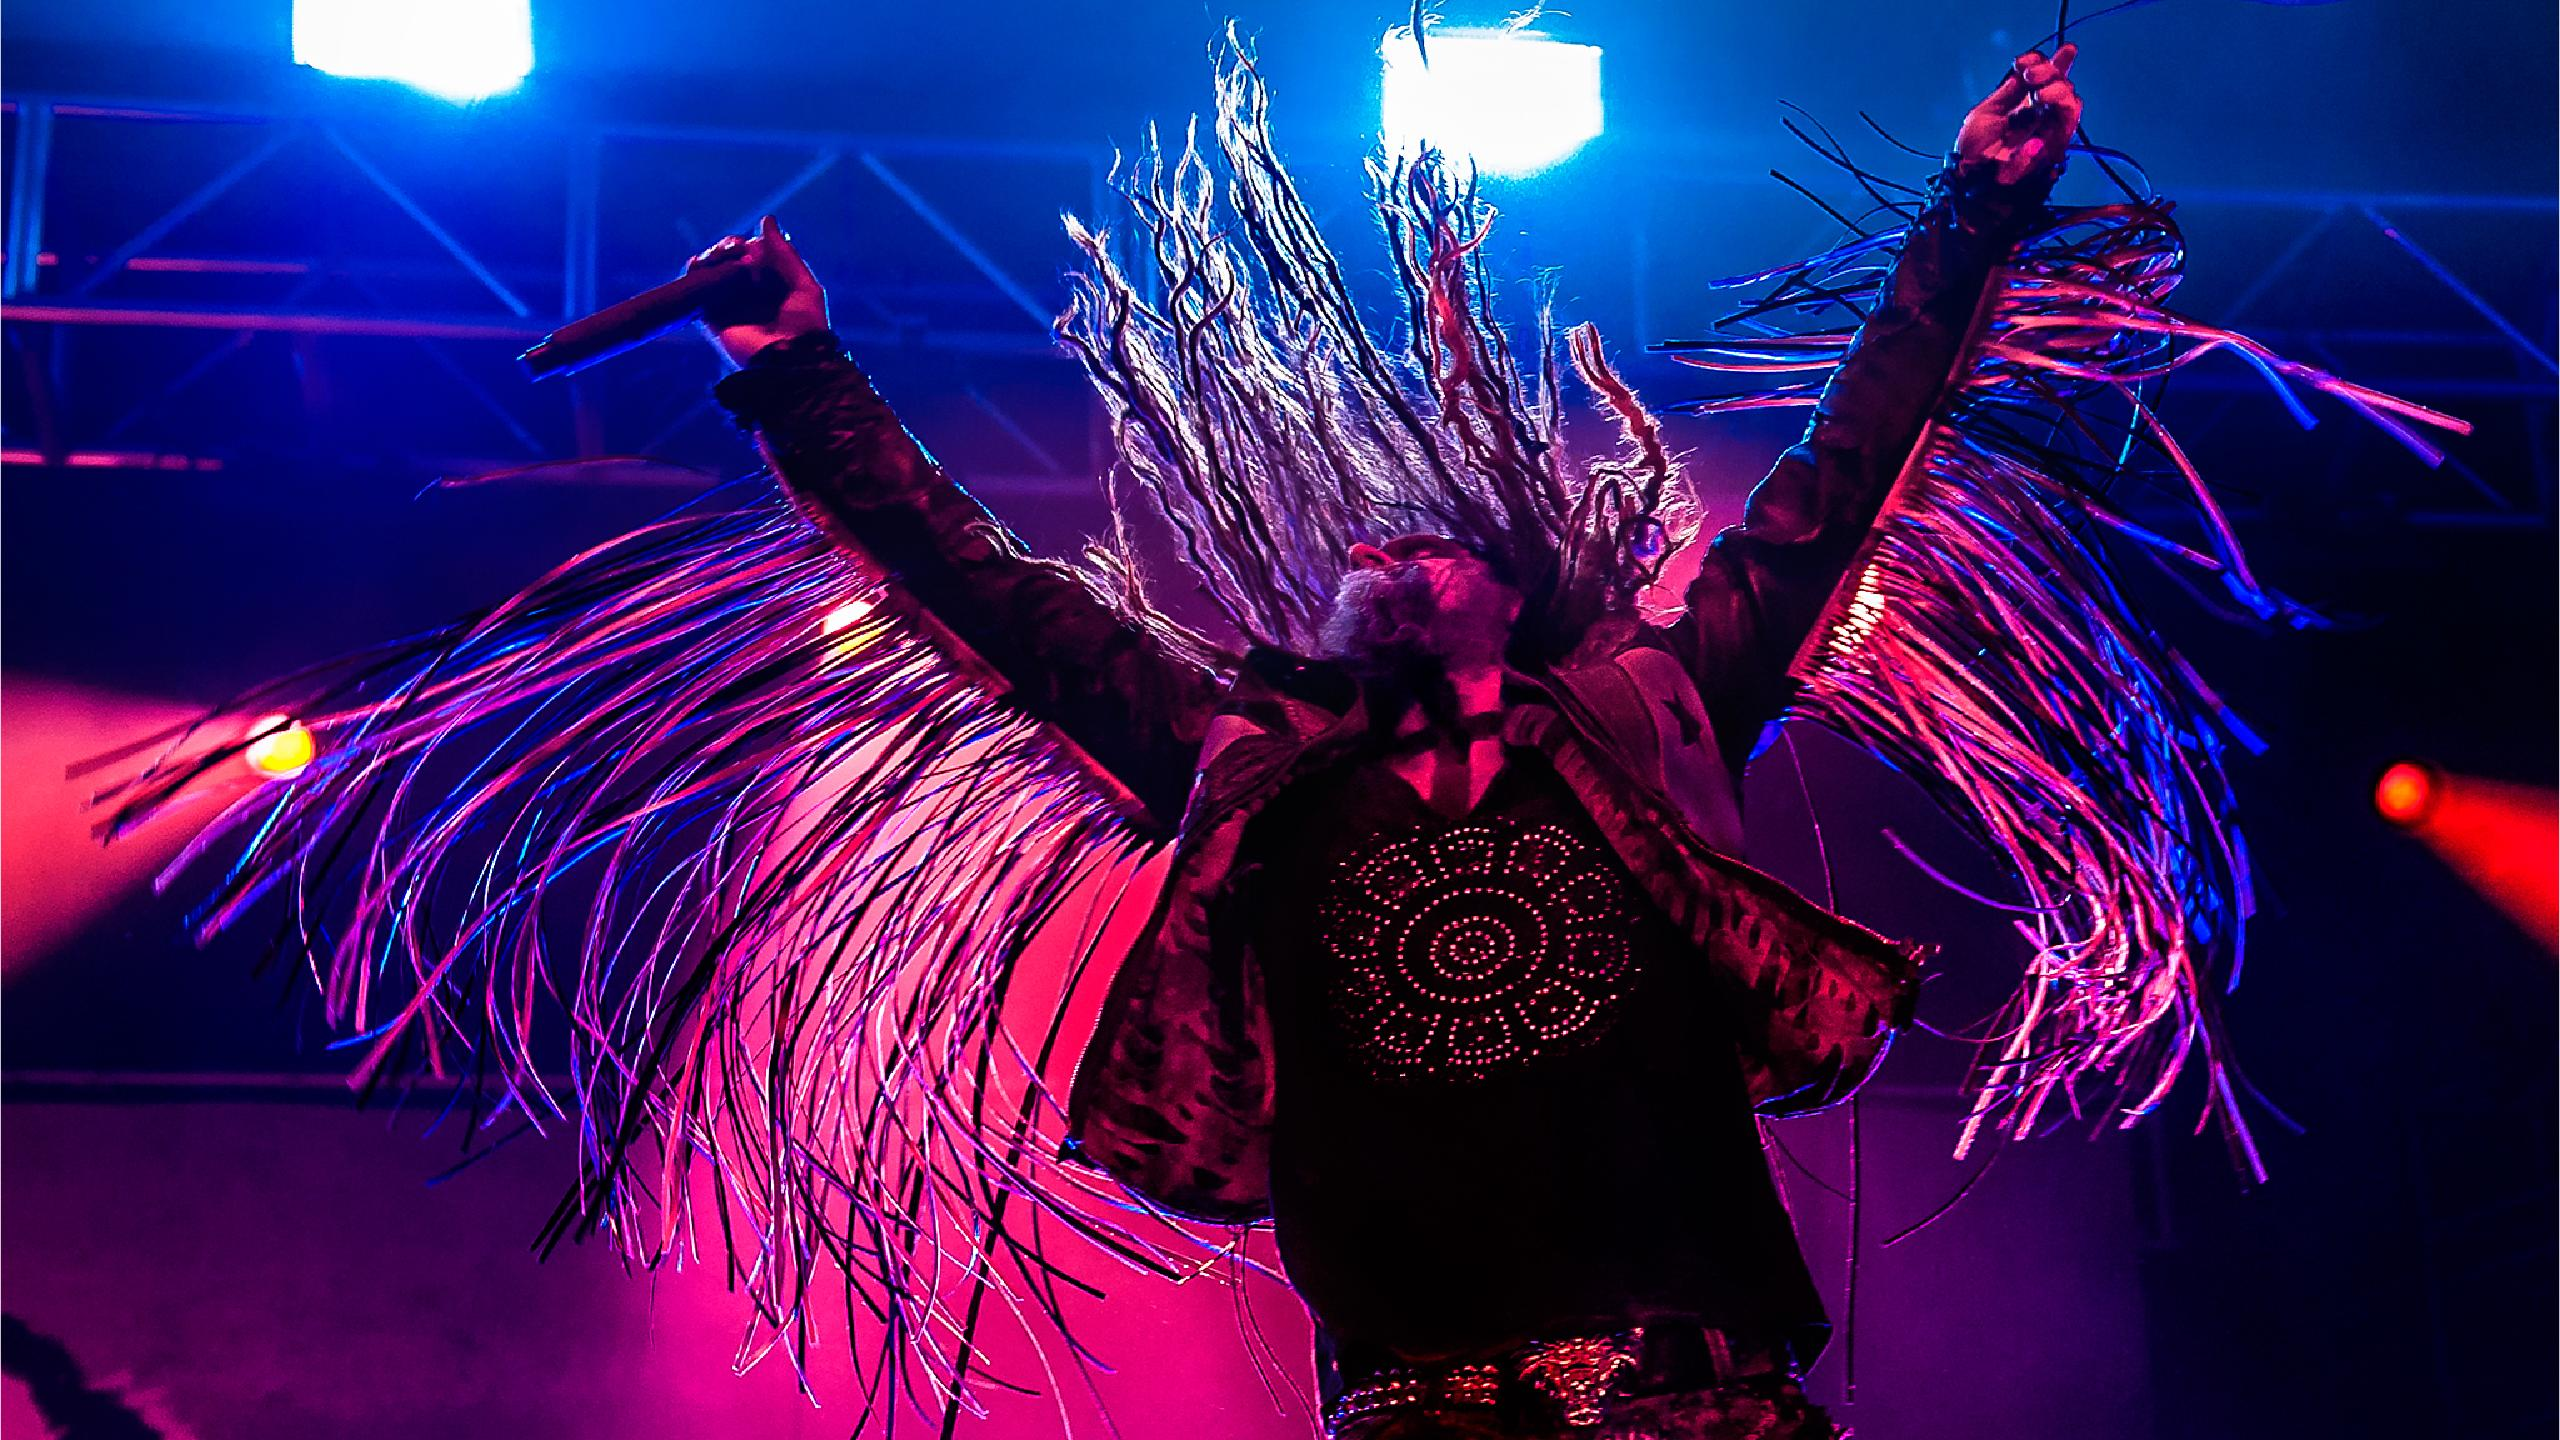 Rob Zombie Tour 2020.Rob Zombie Tour Dates 2019 2020 Rob Zombie Tickets And